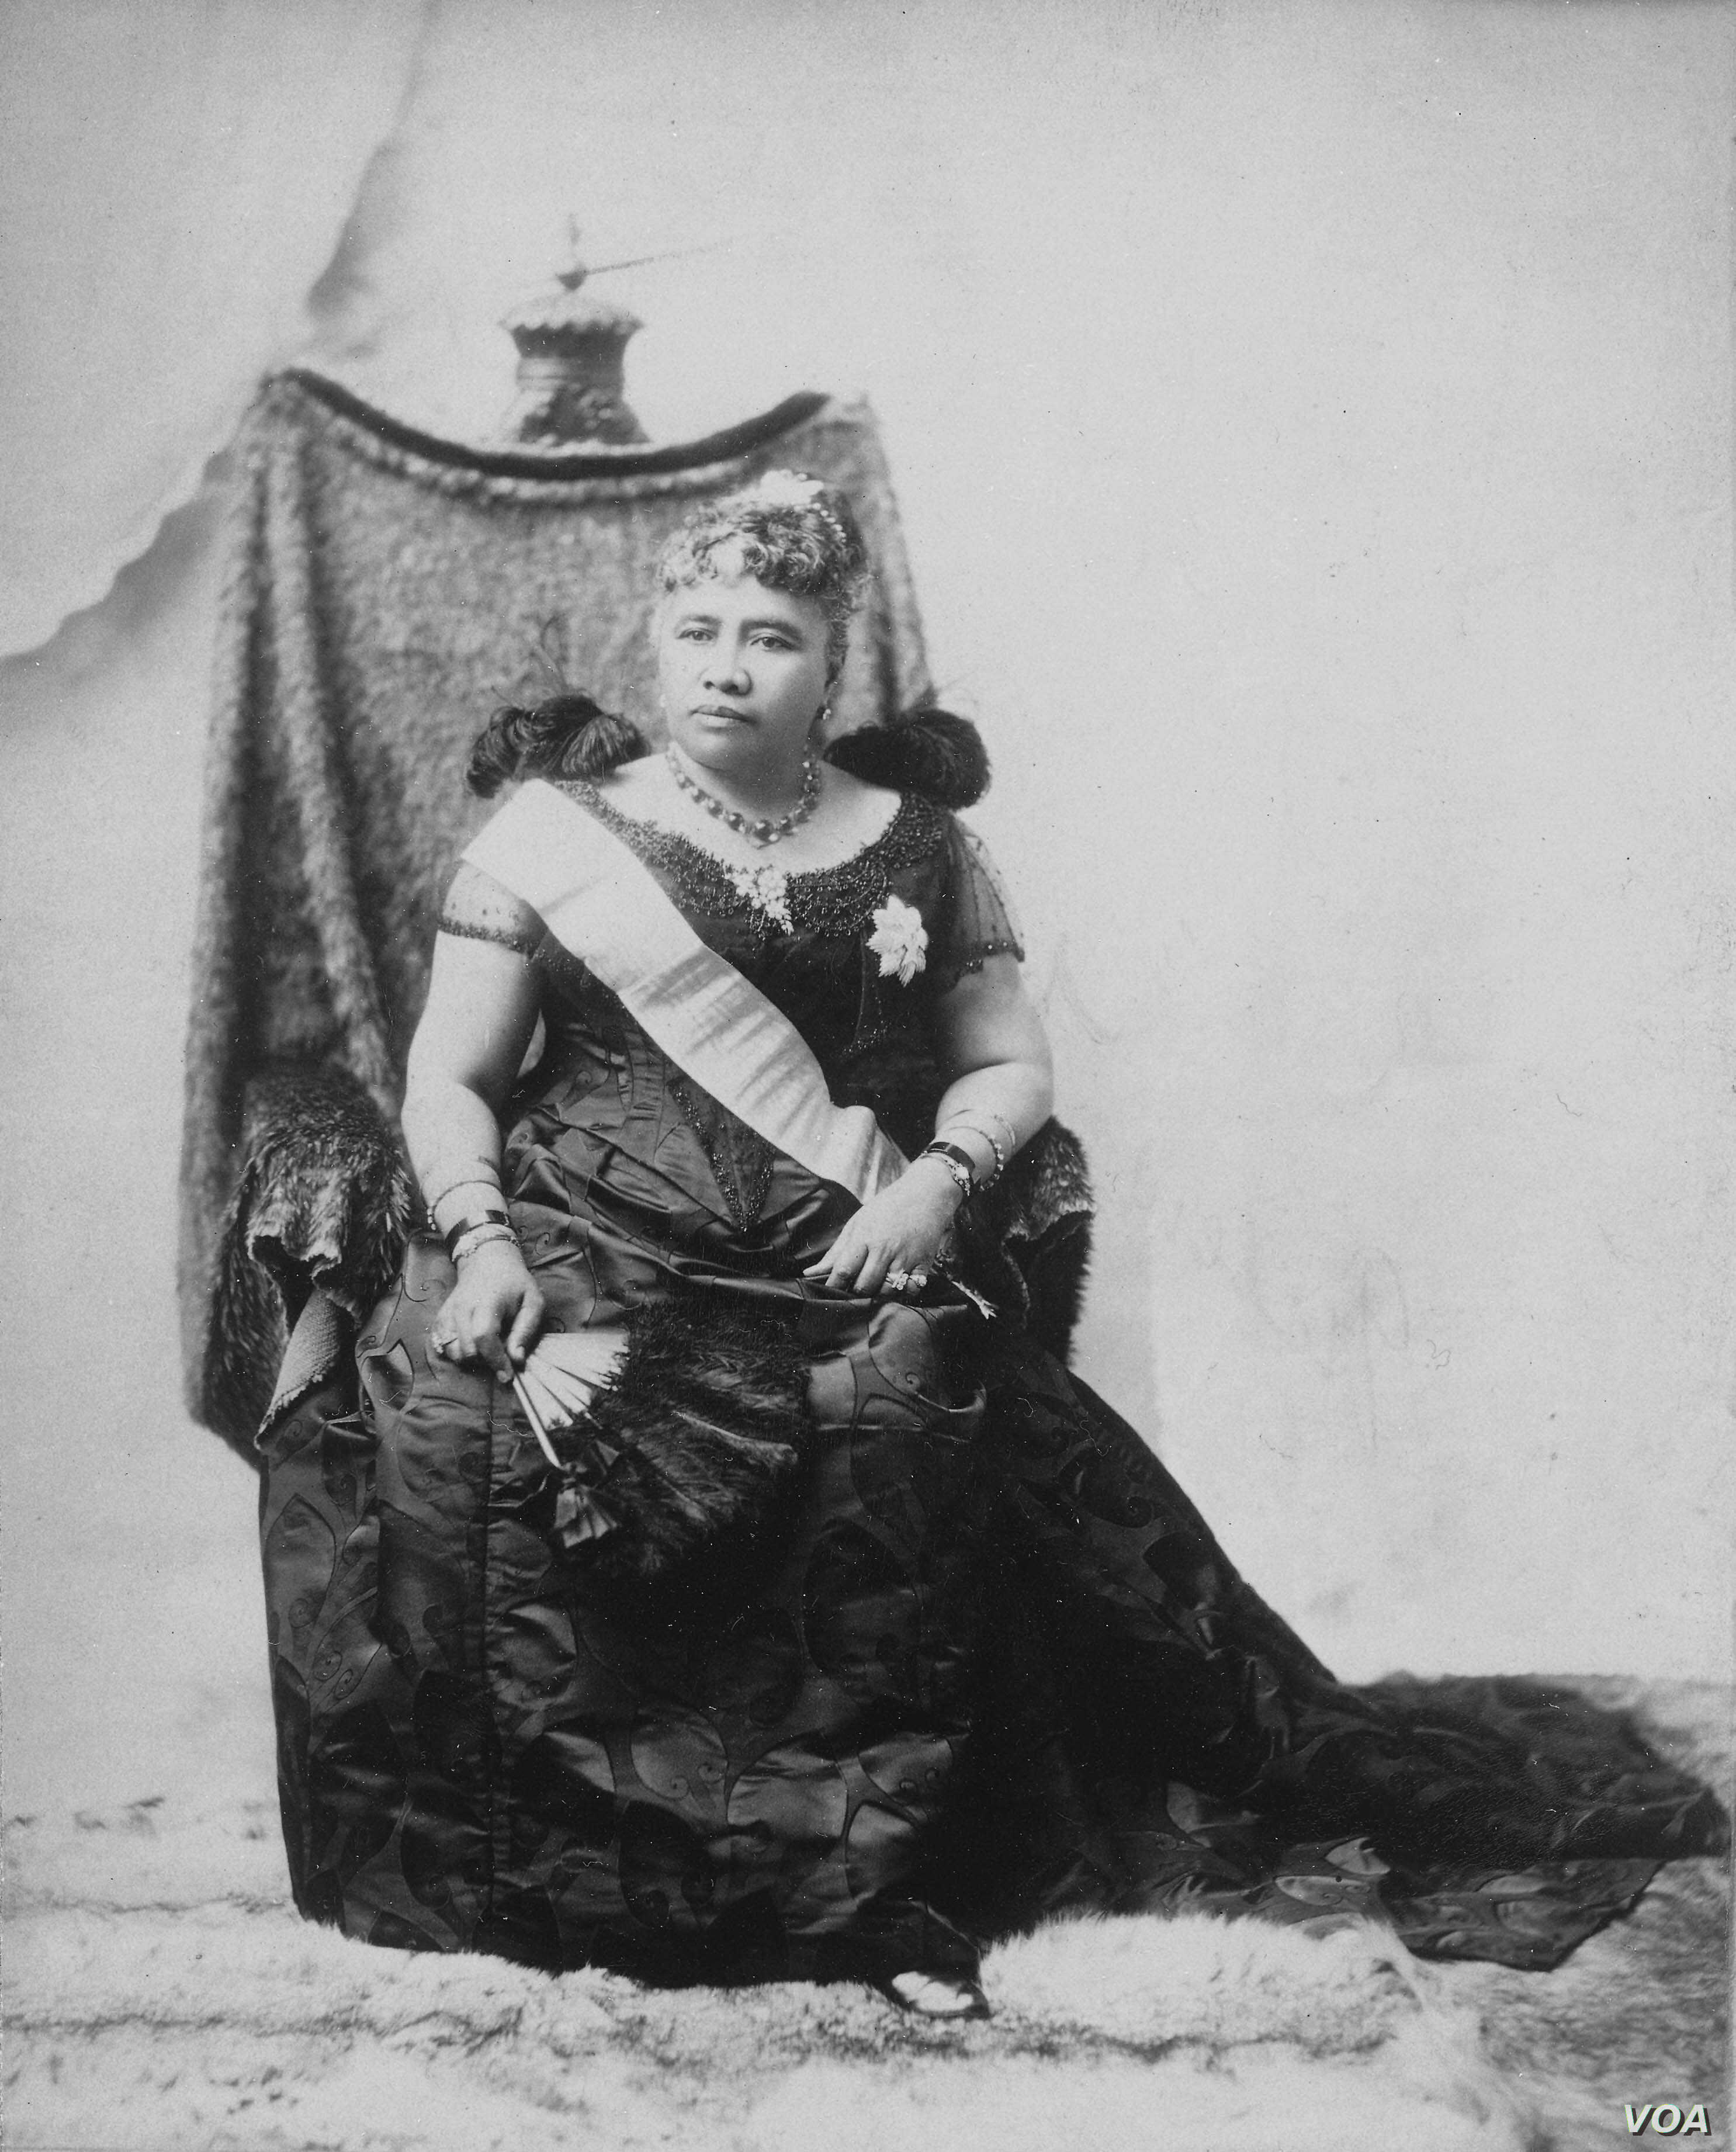 Hawaii's Queen Liliuokalani, who was removed from the throne in a coup with American support.  Photographed around 1891 by James J. Williams